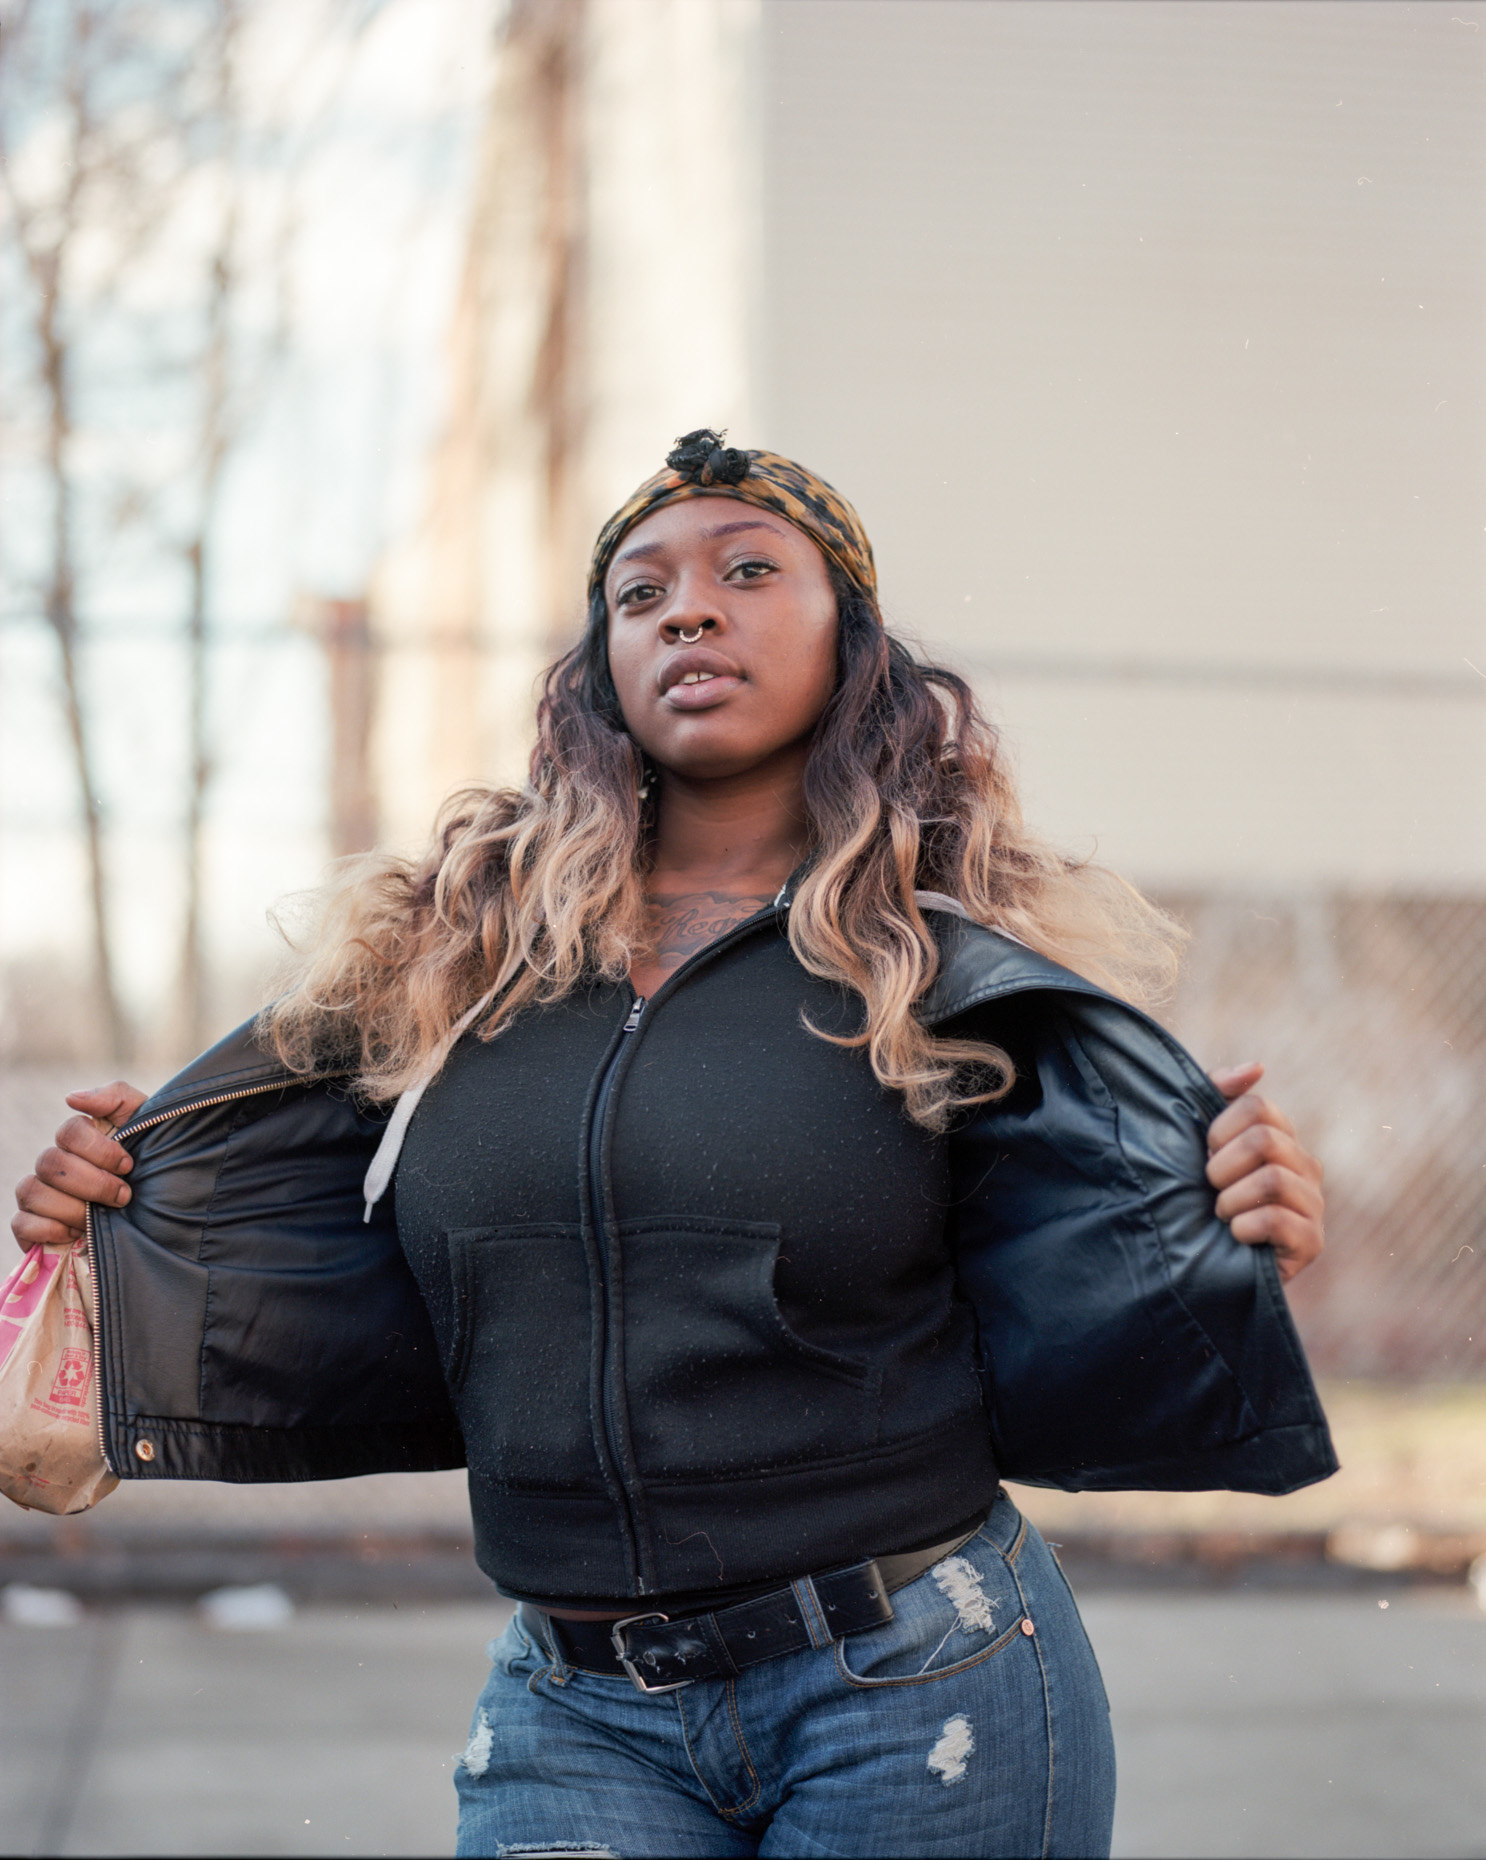 Color Portrait of a young female in Crown Heights Brooklyn, New York.